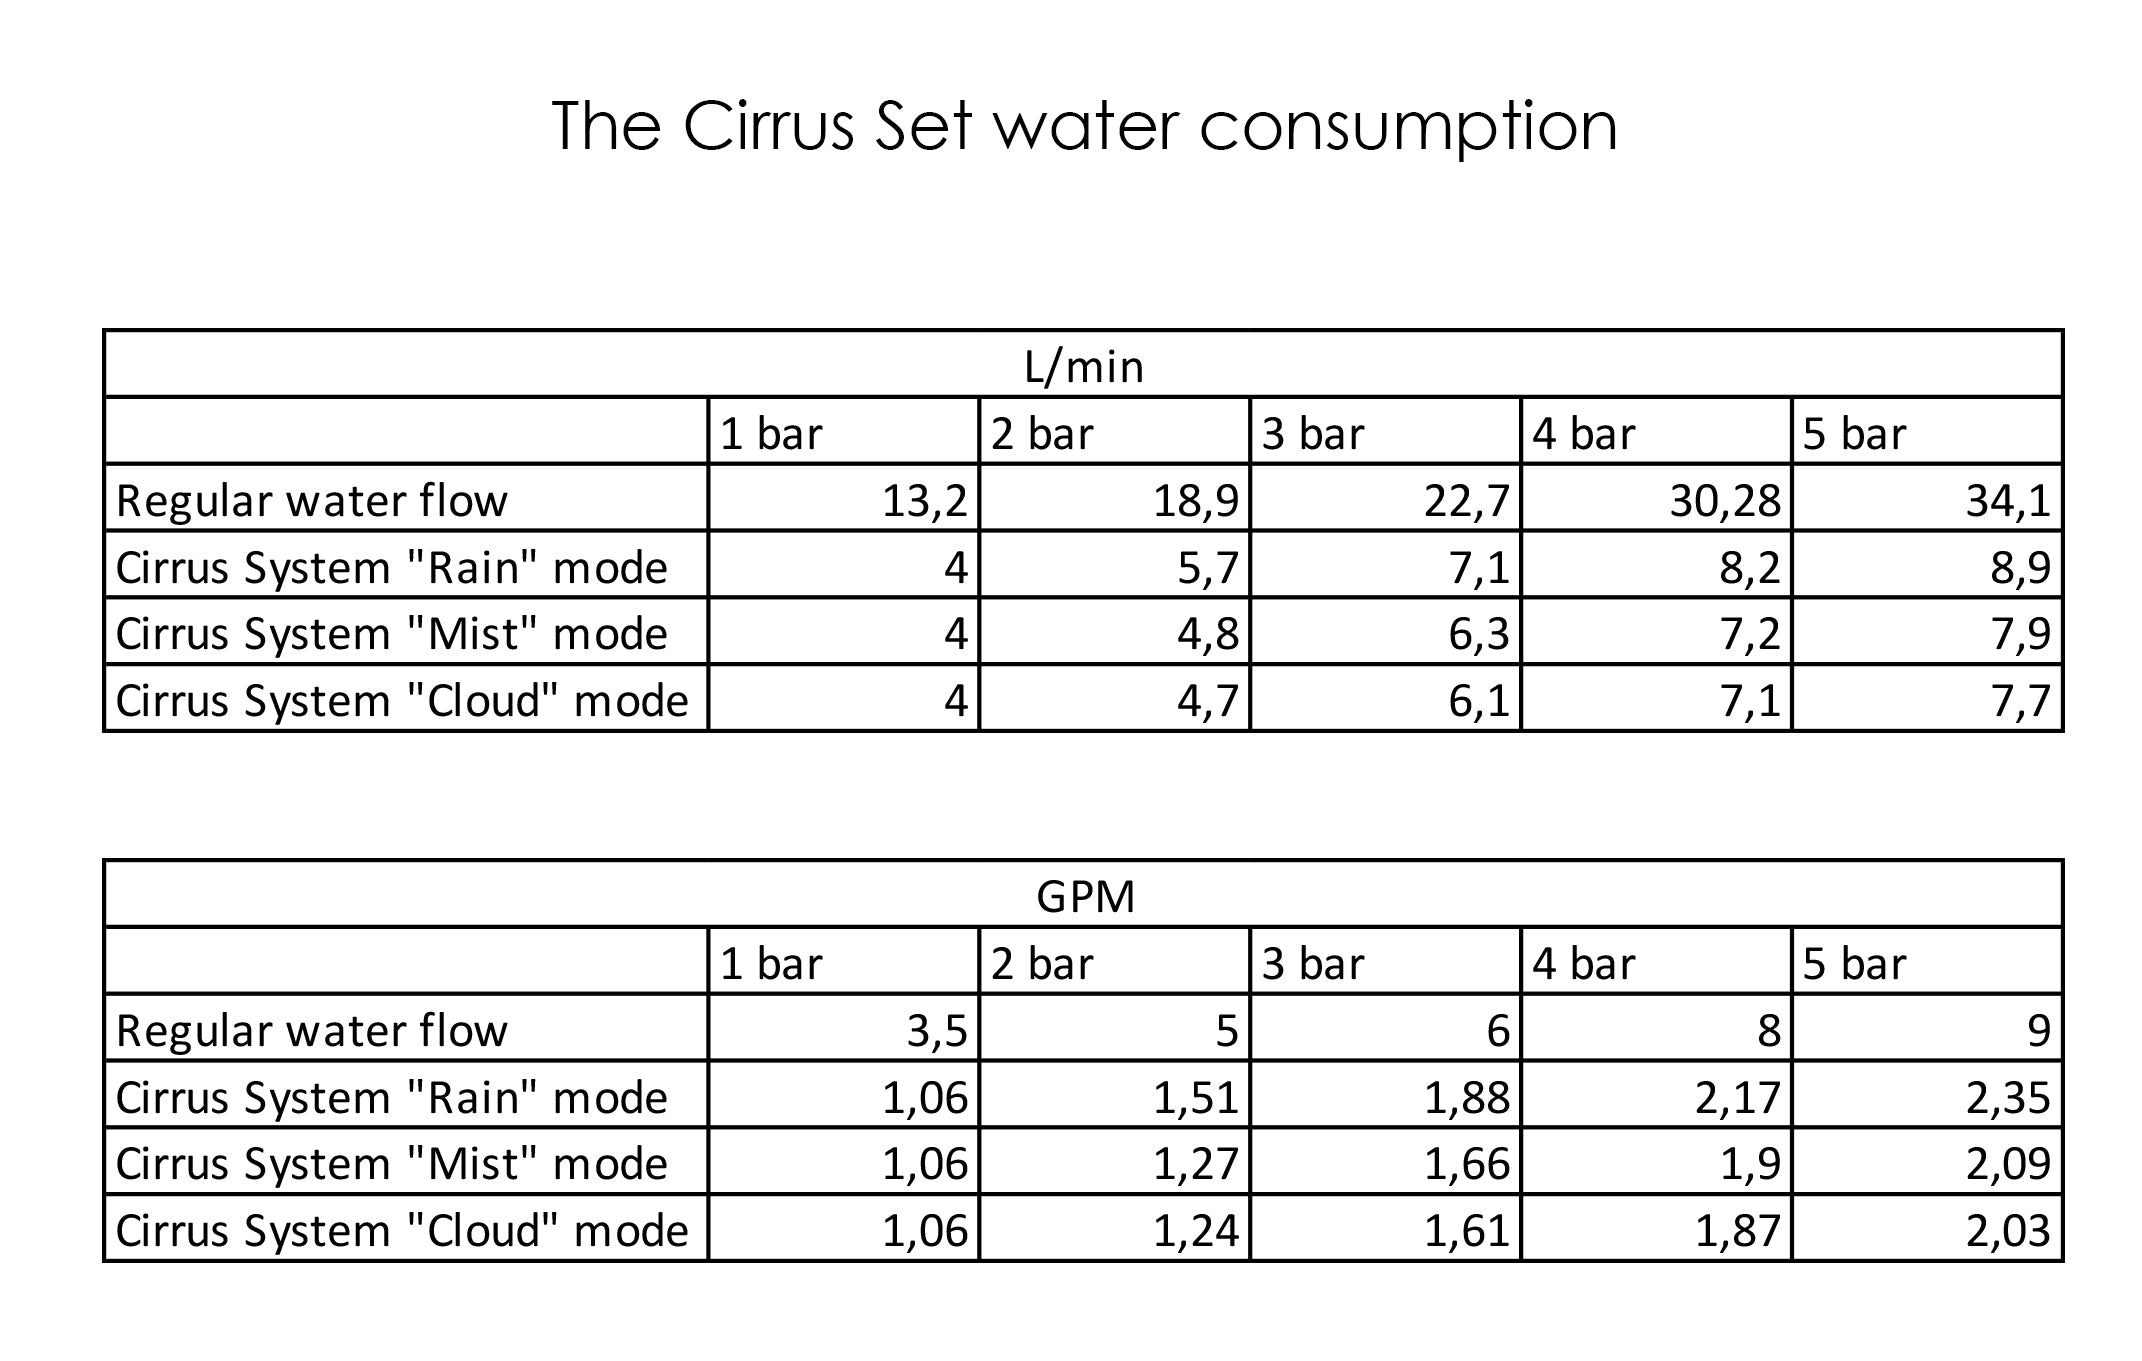 The_Cirrus_Set_water_consumption.jpg